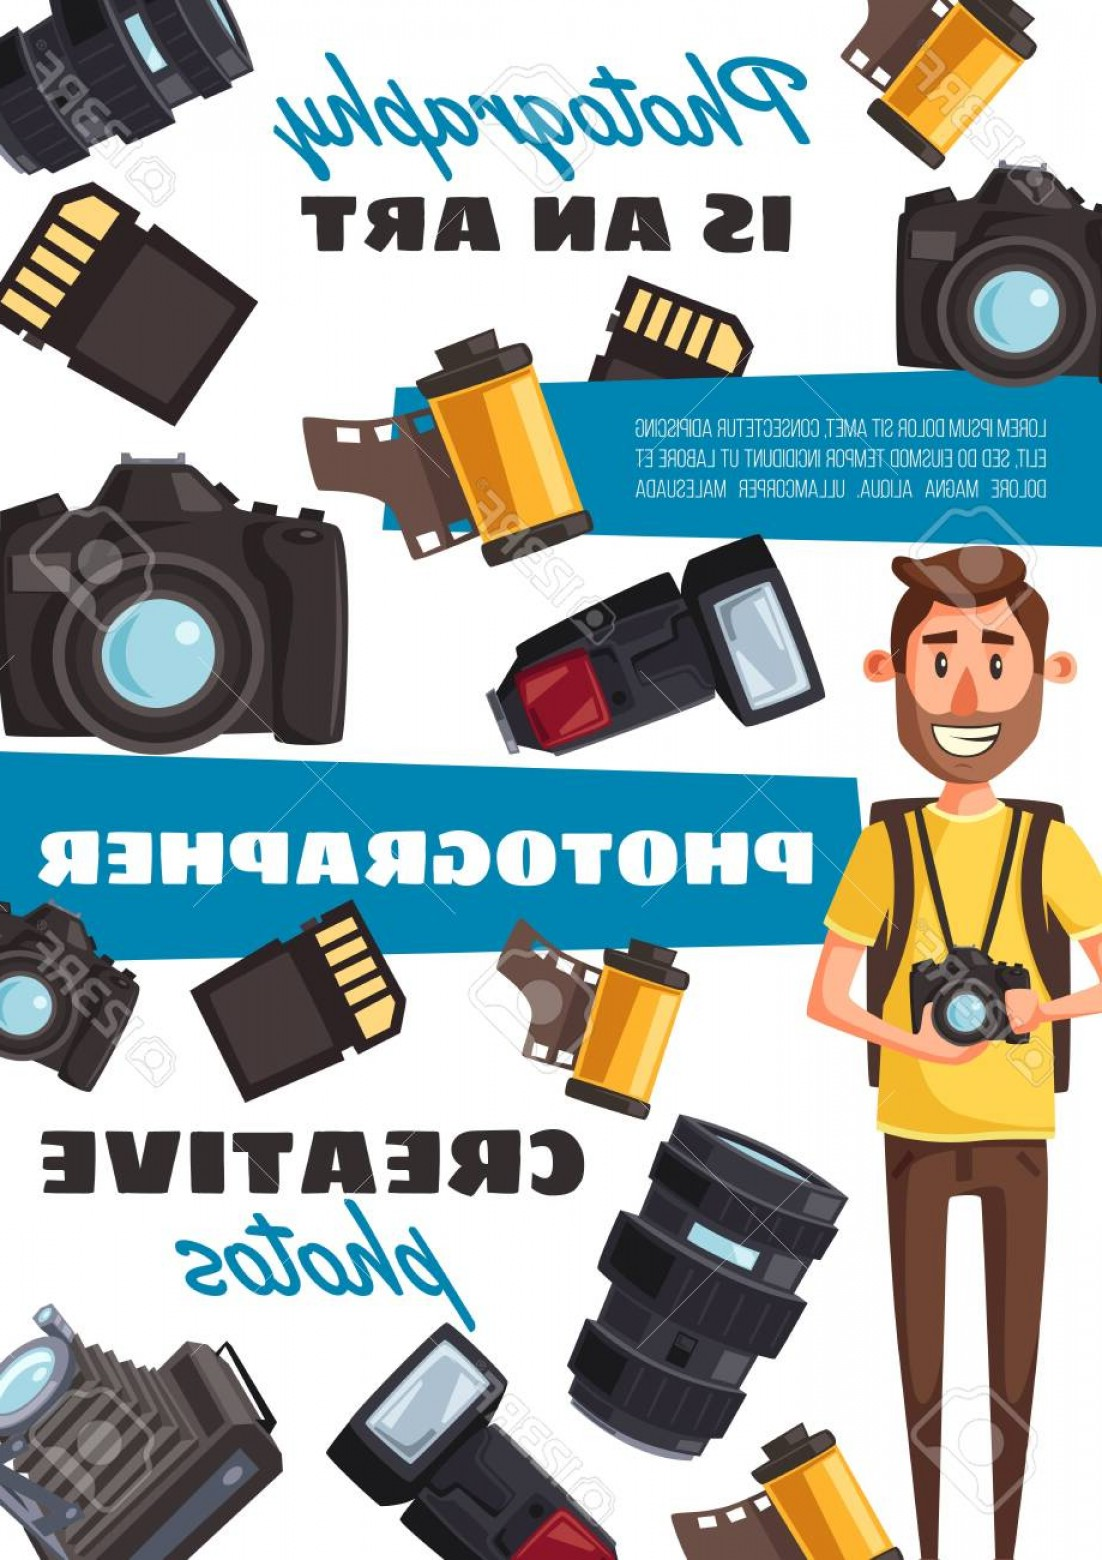 Hires Camera Lens Vector: Photostock Vector Photo Equipment And Photographer Vector Camera And Film Lens And Flashlight Memory Card Journalist P